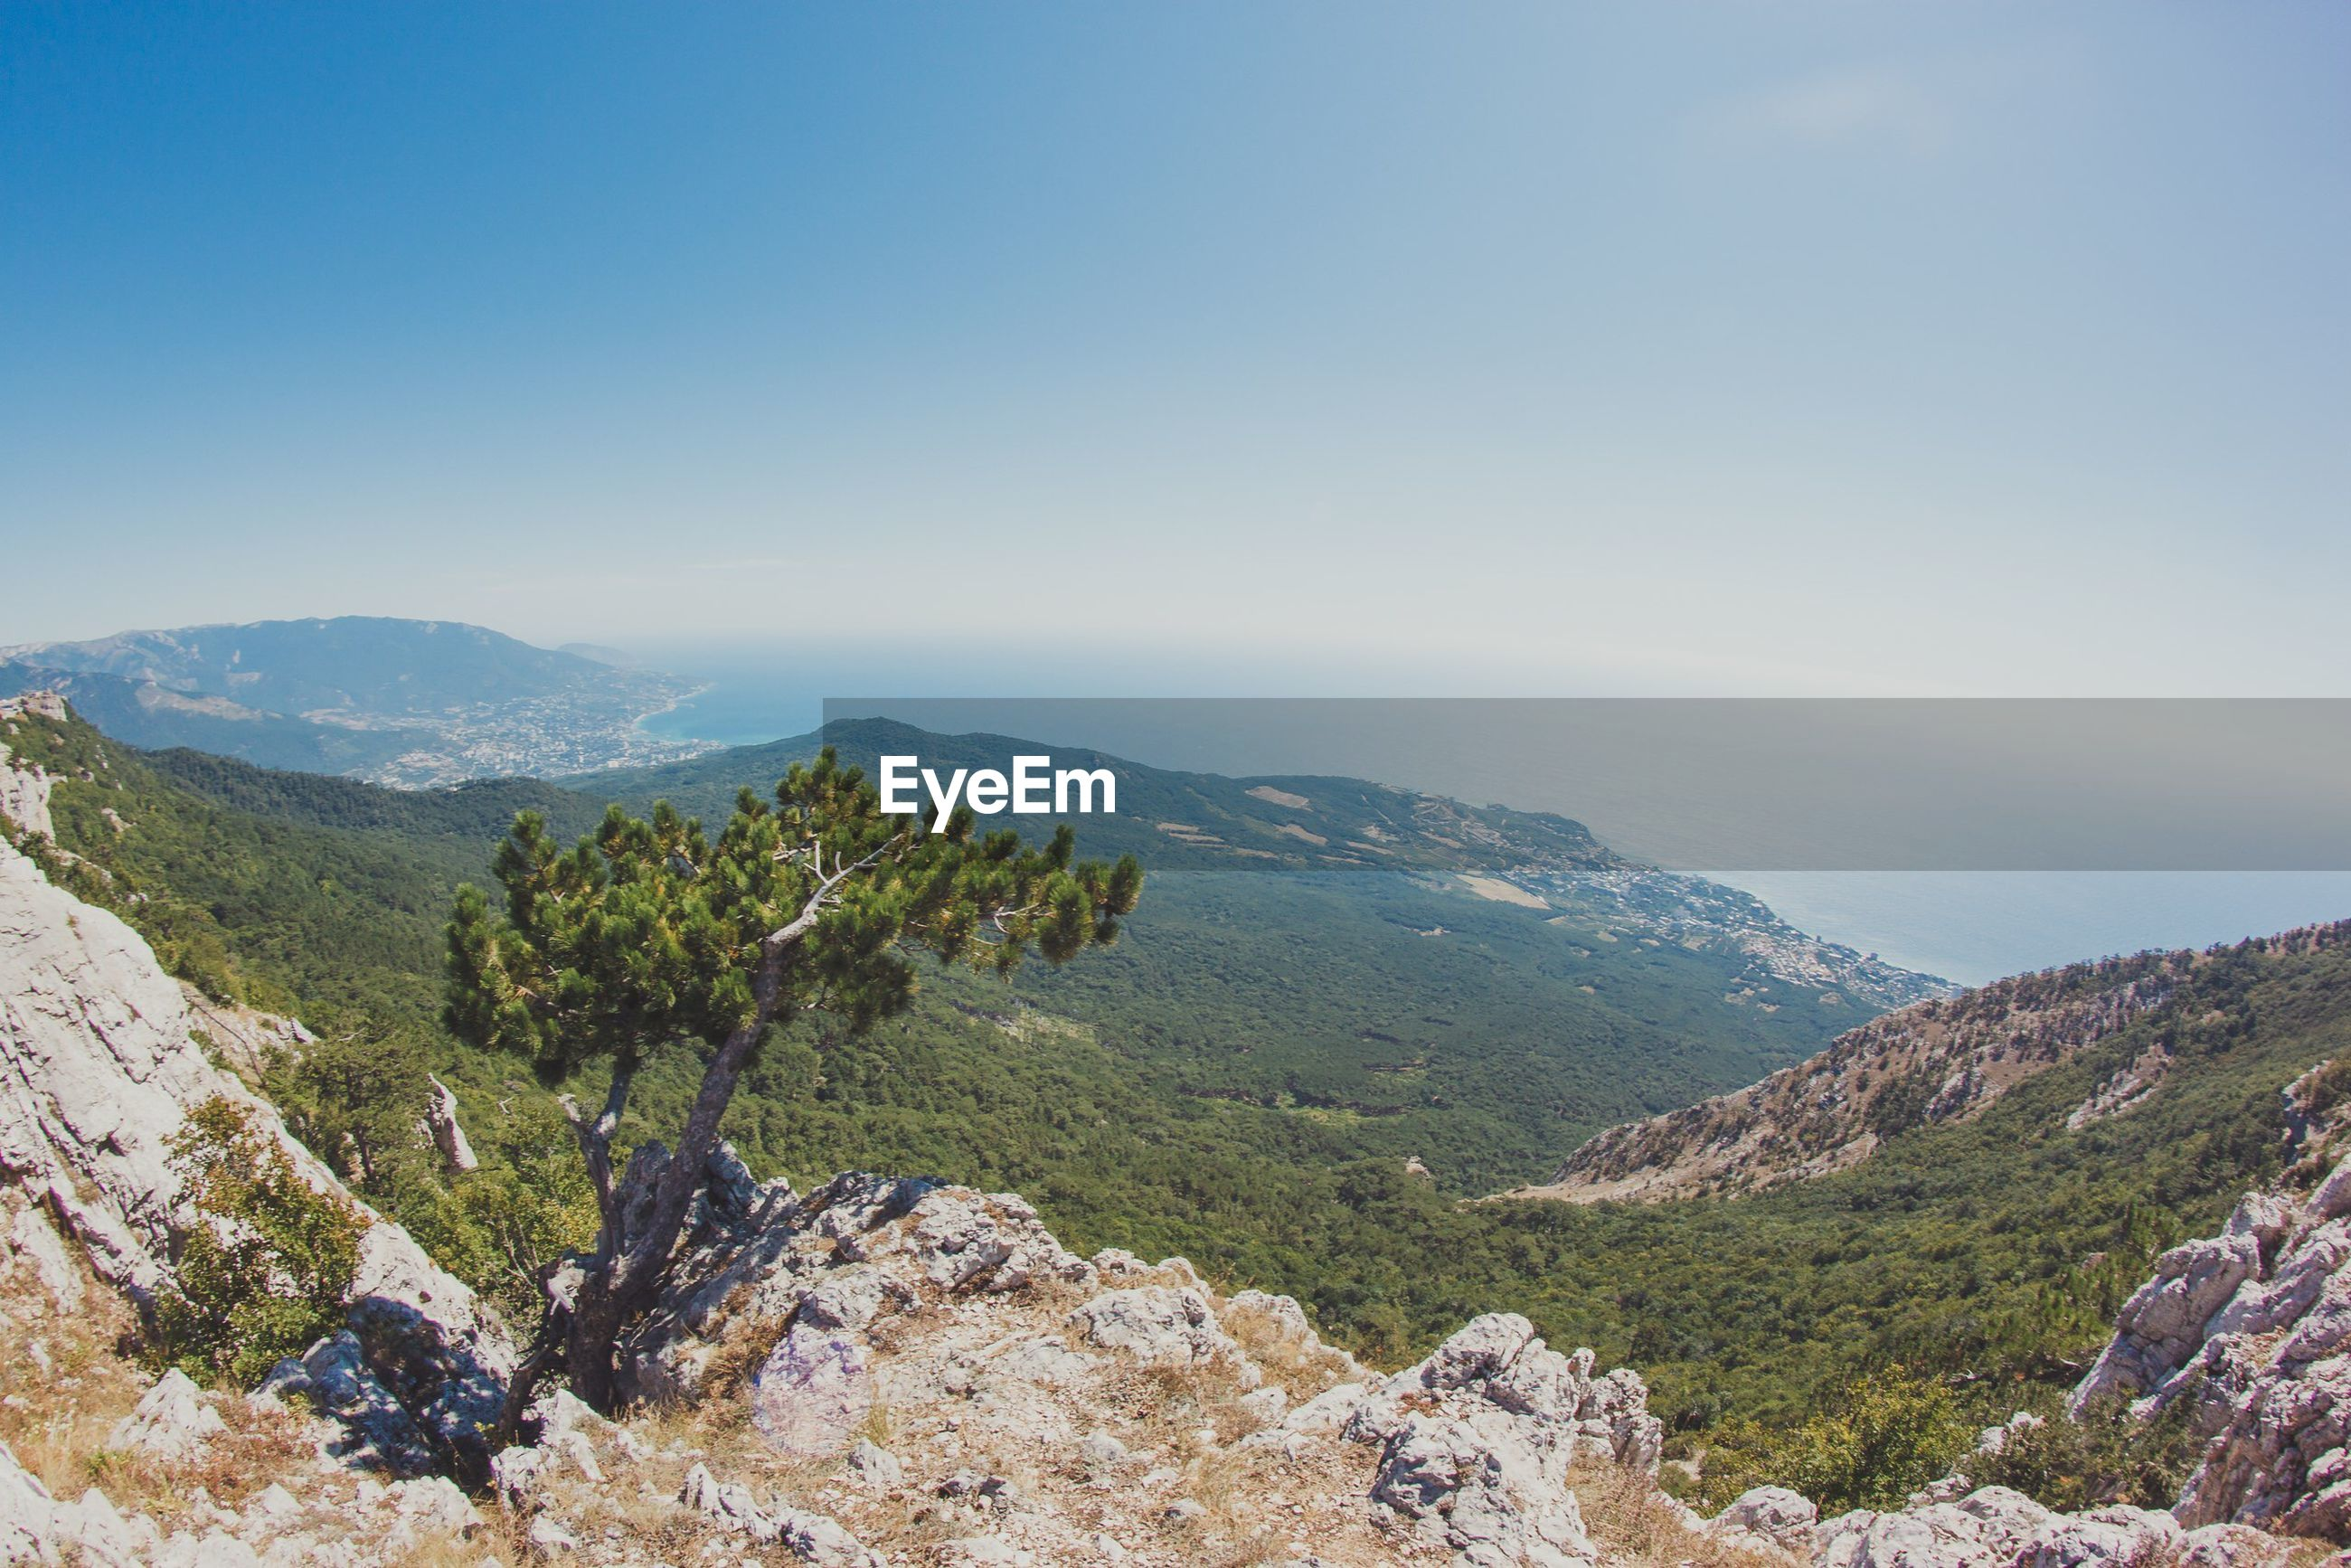 Scenic view of mountains and sea against clear sky